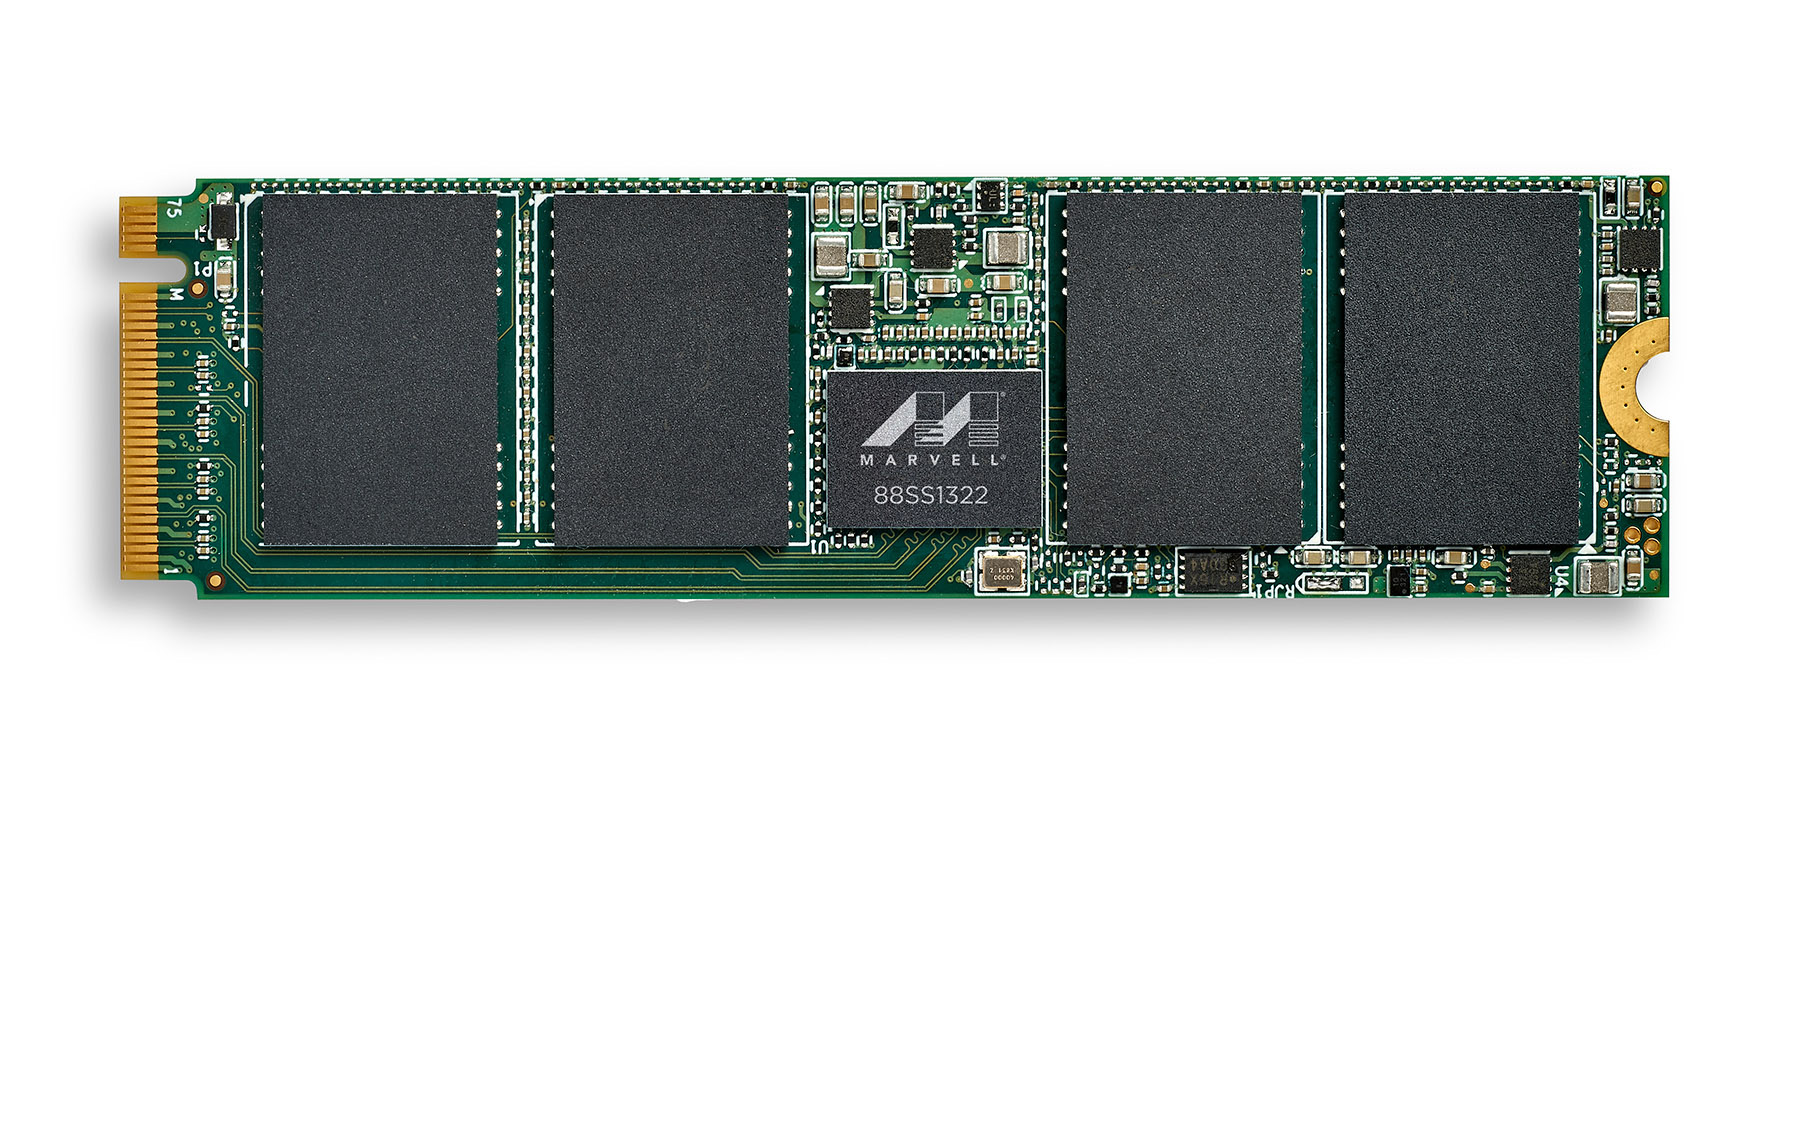 m.2280 DRAM-less SSD Reference Design with Marvell® 88SS1322 PCIe® Gen4 NVMe™ SSD Controller